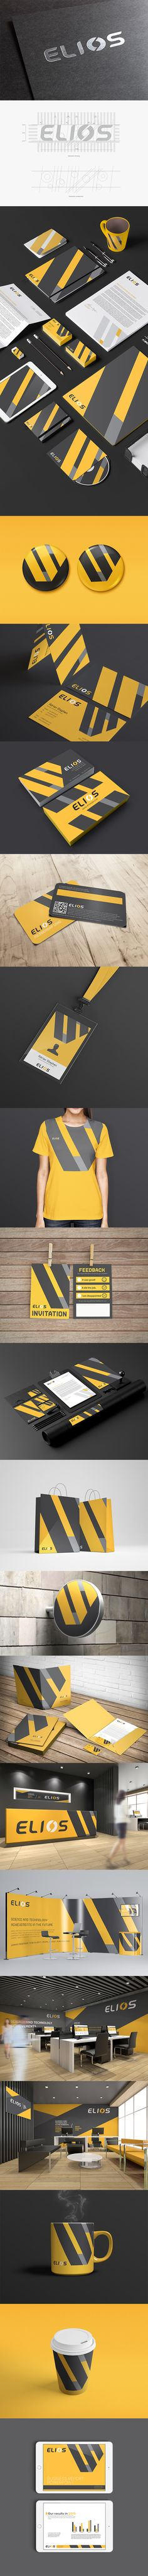 Elios Branding corporate identity by Rayz Ong